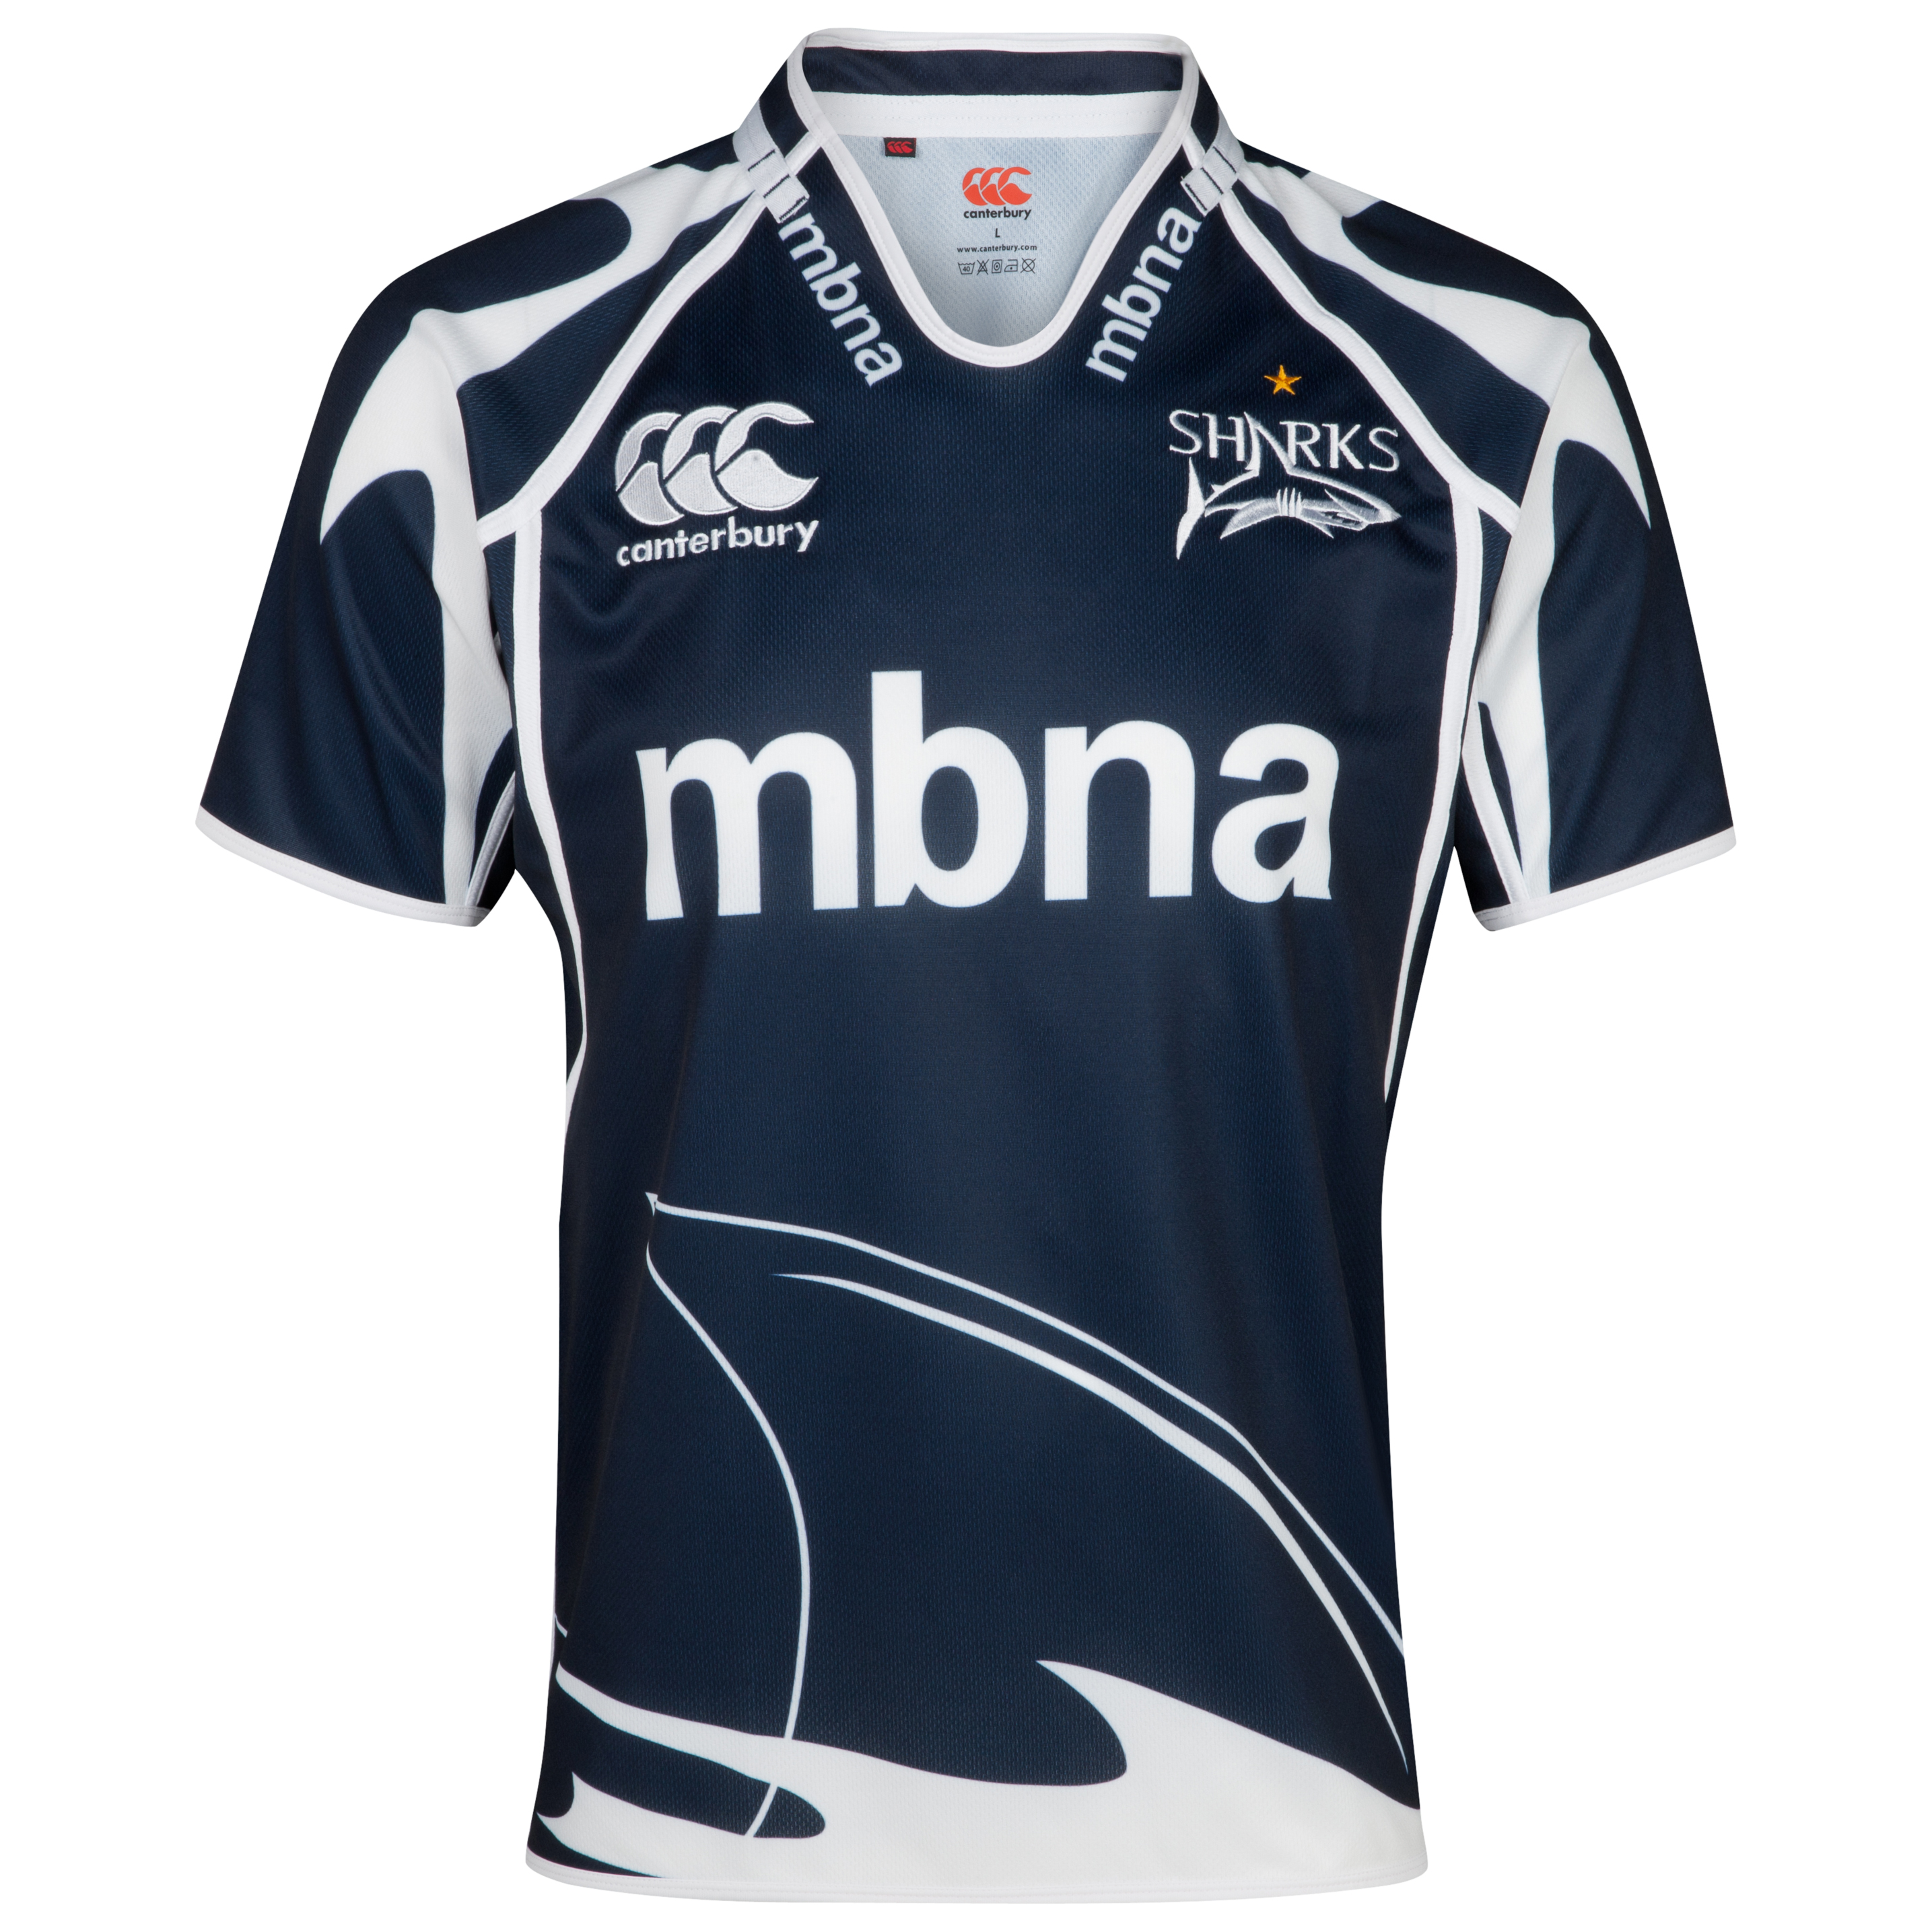 Sale Sharks Home Pro Rugby Shirt 2012/14